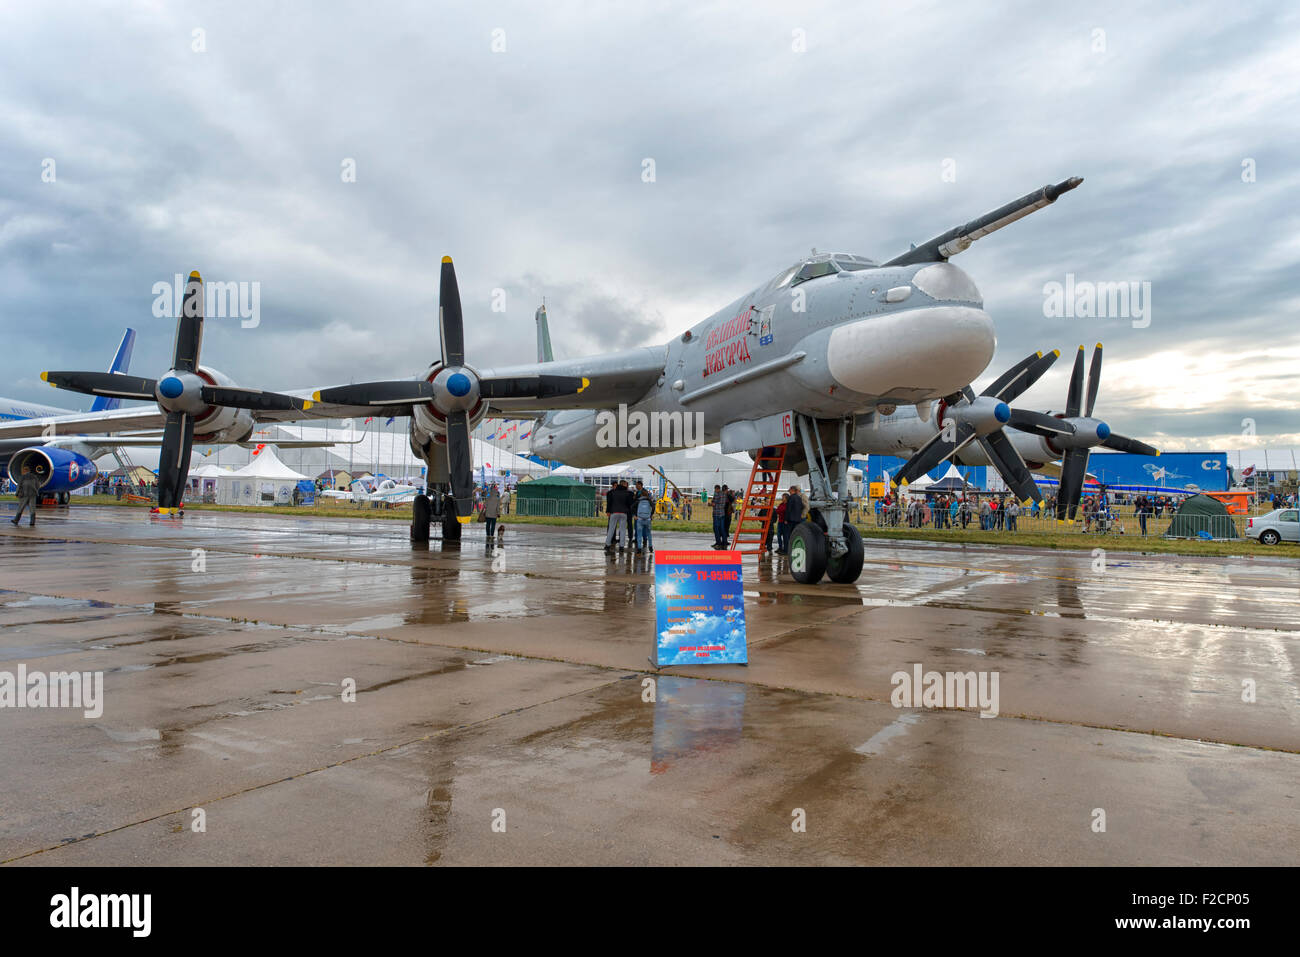 Tupolev Tu-95MS at MAKS 2015 Air Show in Moscow, Russia - Stock Image